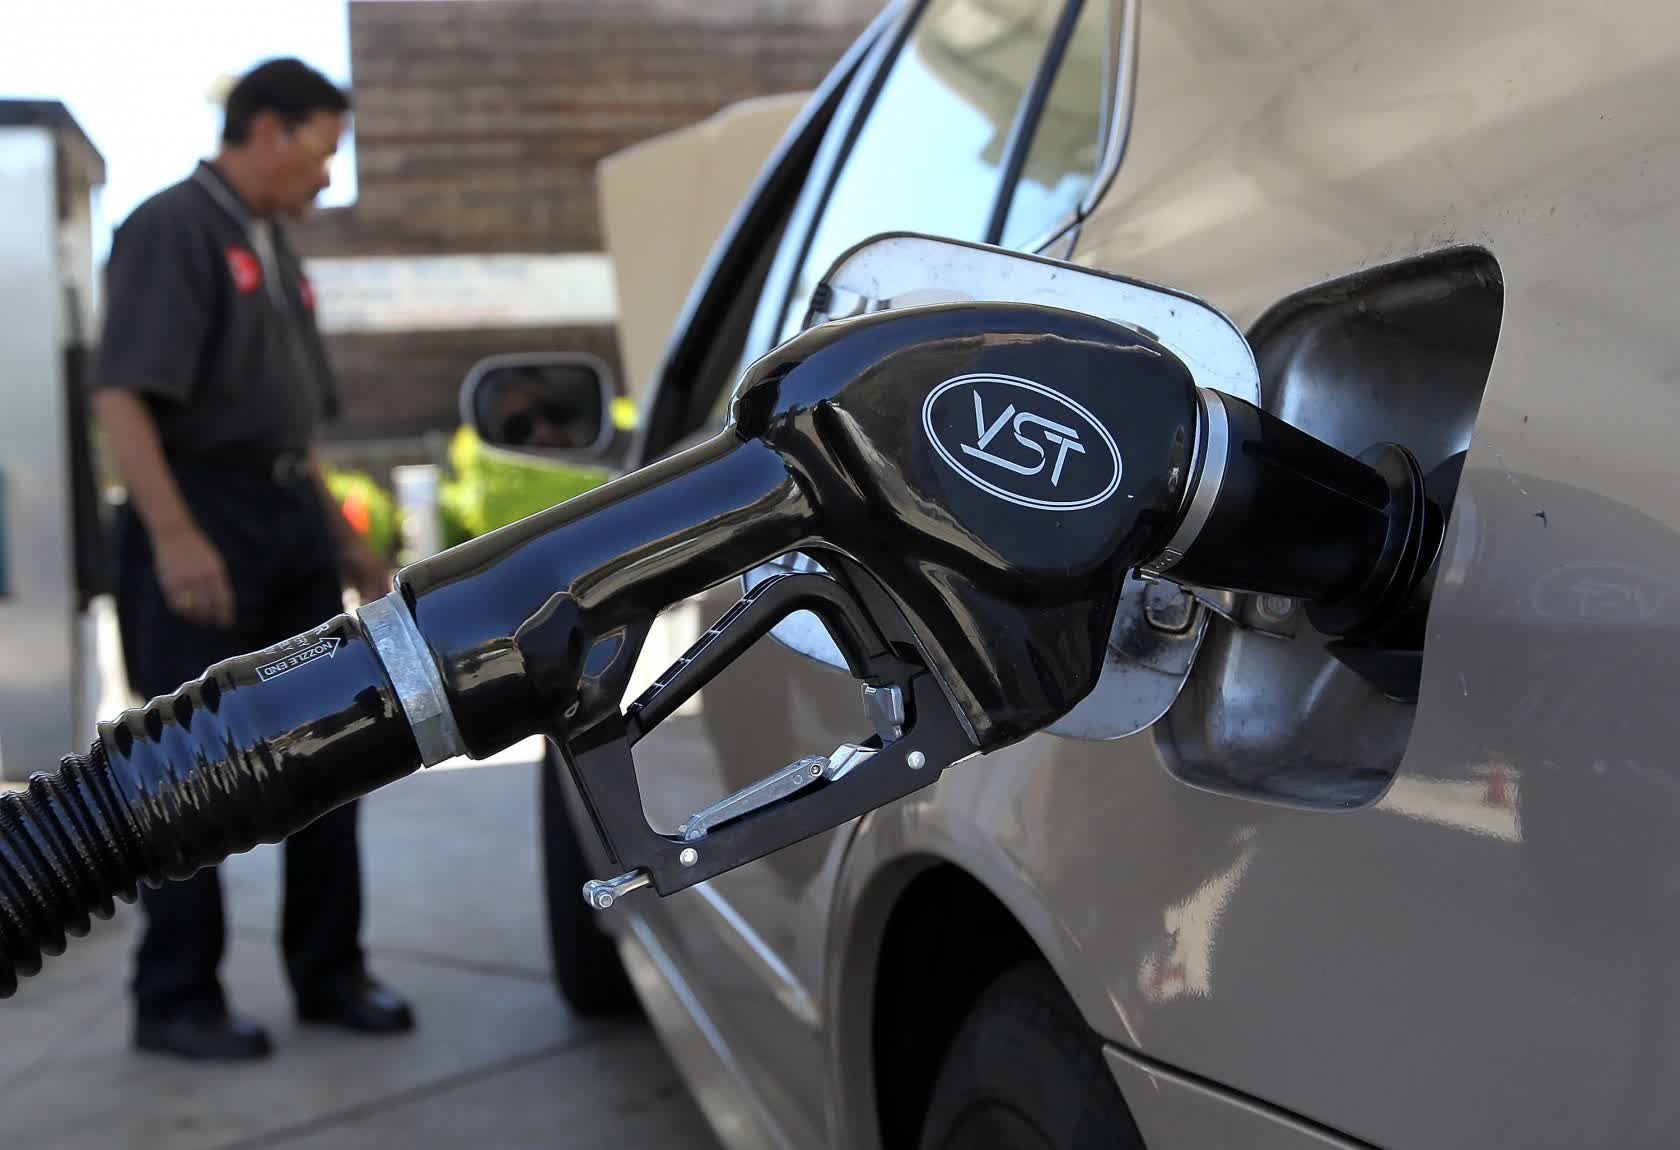 Massachusetts aims to ban the sale of new gas-powered vehicles by 2035